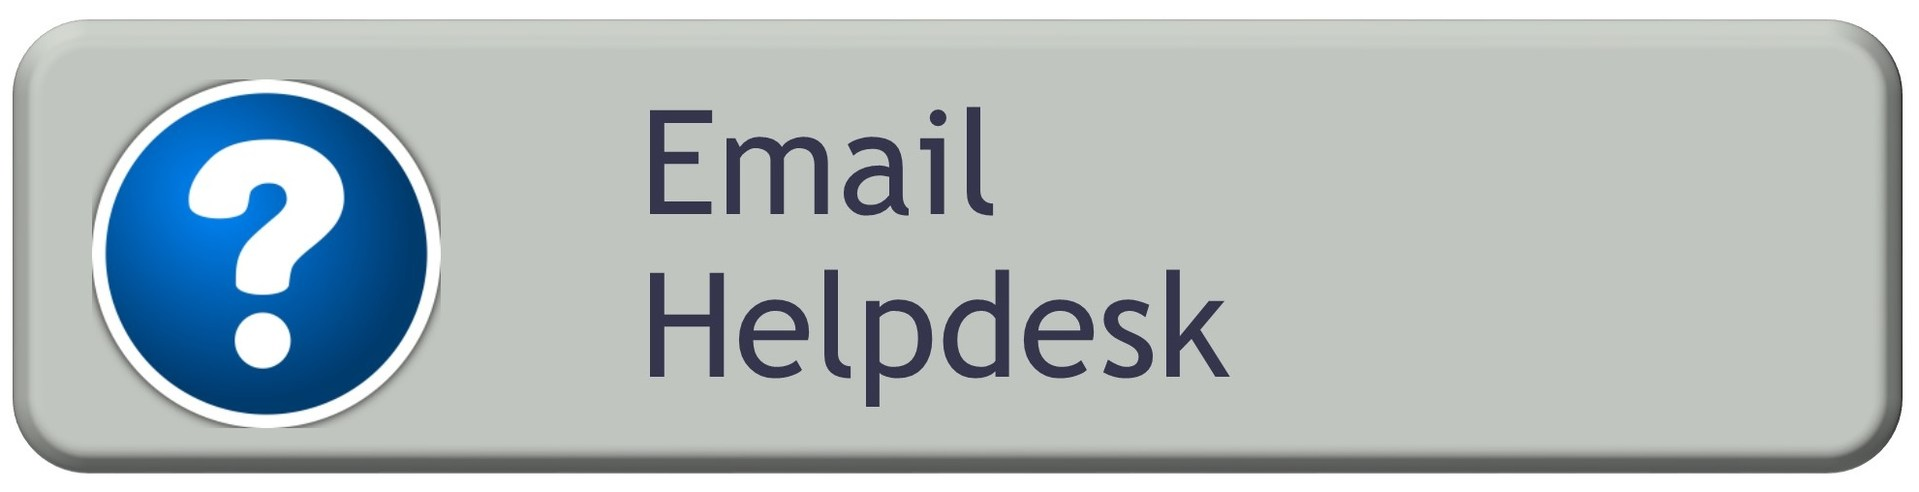 Email Helpdesk